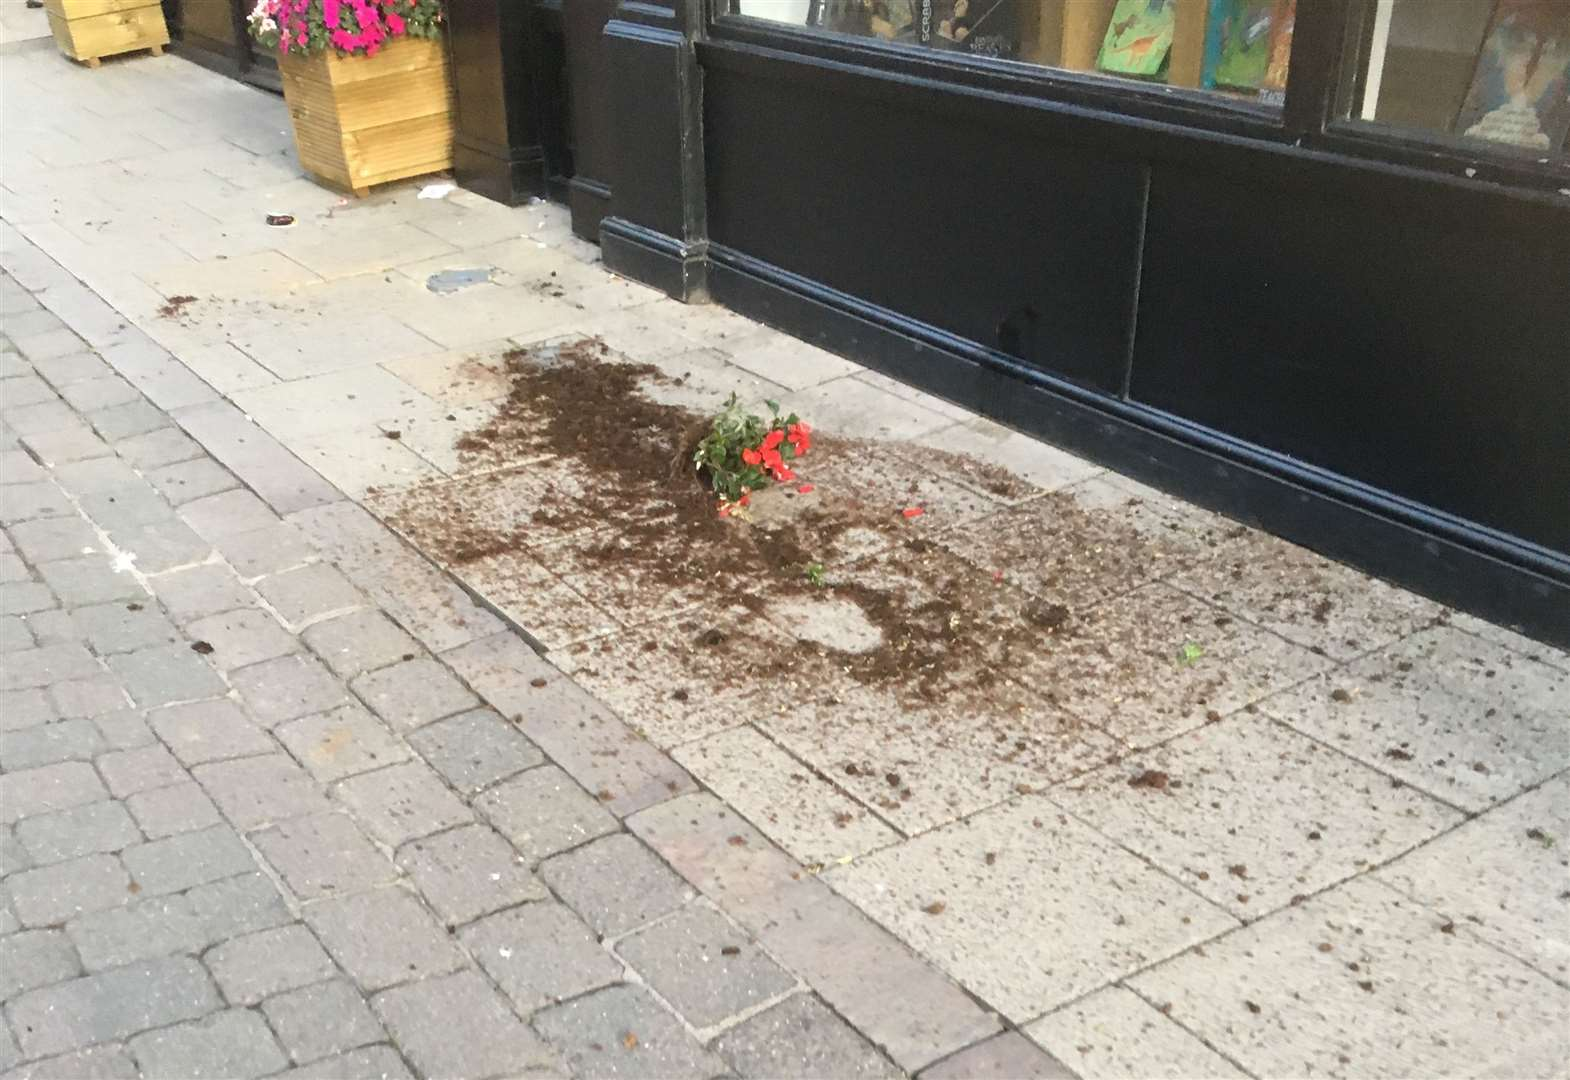 Positive feedback for planters despite acts of vandalism